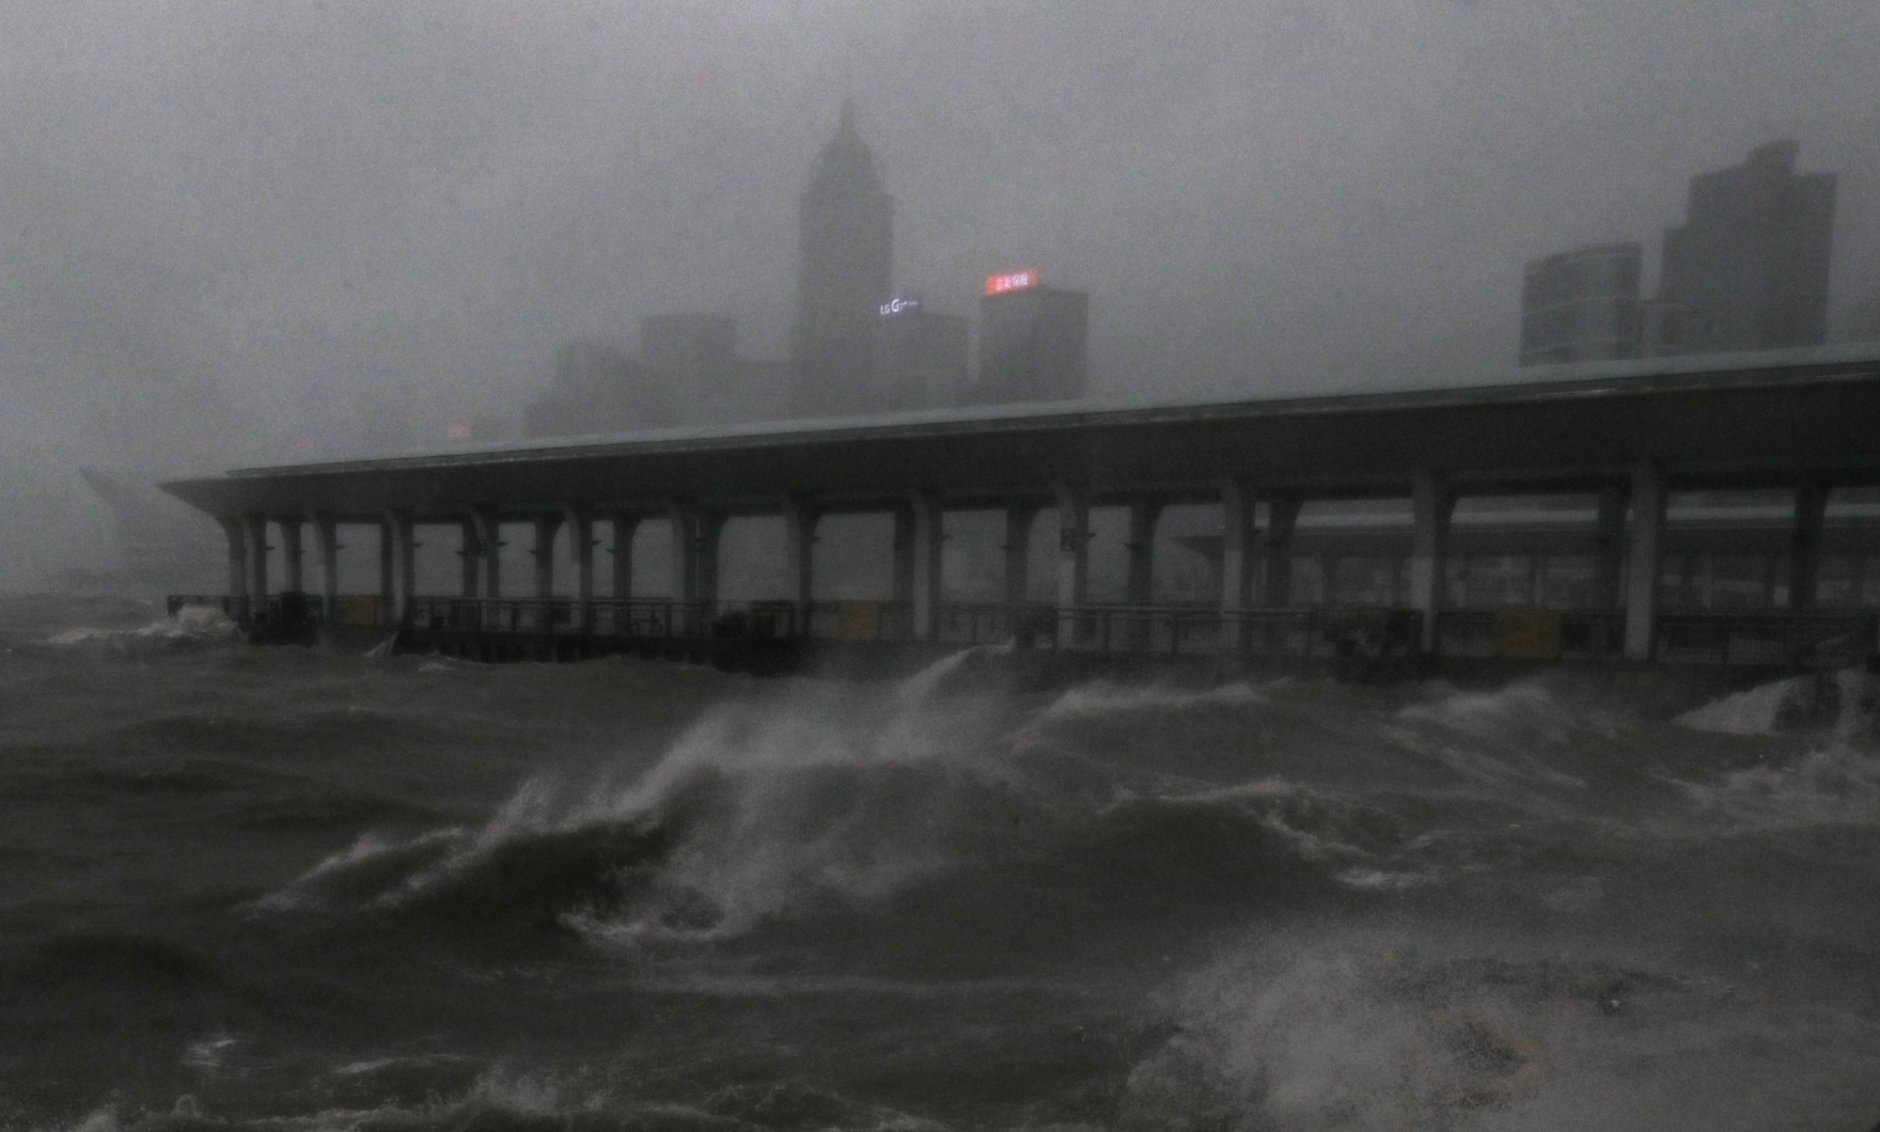 Strong wind caused by Typhoon Mangkhut churns waves on the waterfront of Victoria Habour Hong Kong, Sunday, Sept. 16, 2018. Hong Kong and southern China hunkered down as strong winds and heavy rain from Typhoon Mangkhut lash the densely populated coast. The biggest storm of the year left at least 28 dead from landslides and drownings as it sliced through the northern Philippines. (AP Photo/Vincent Yu)